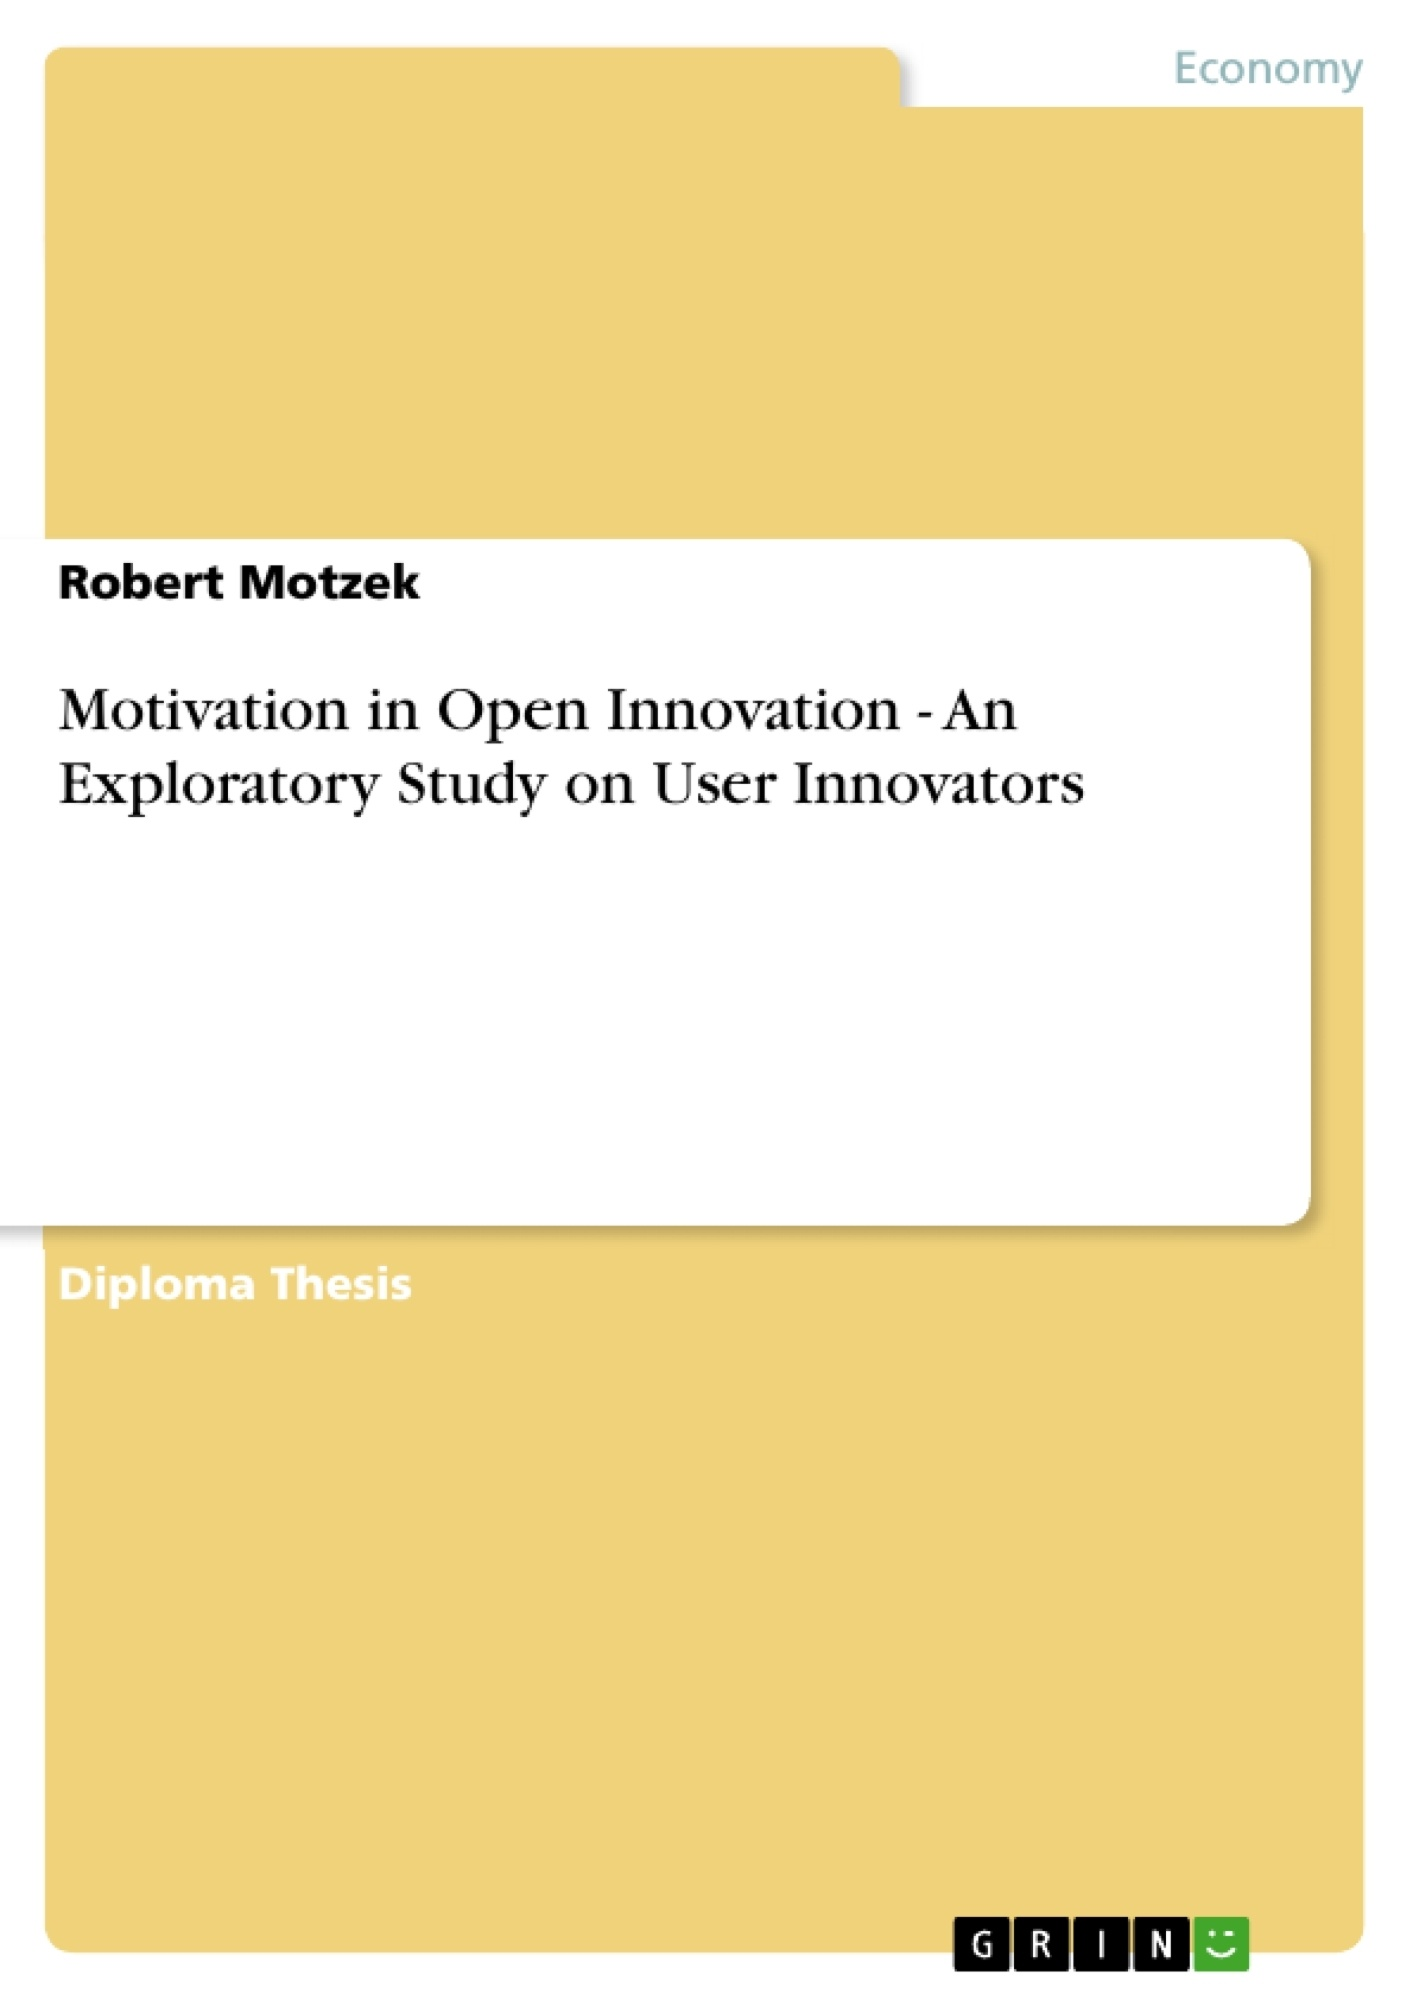 Title: Motivation in Open Innovation - An Exploratory Study on User Innovators